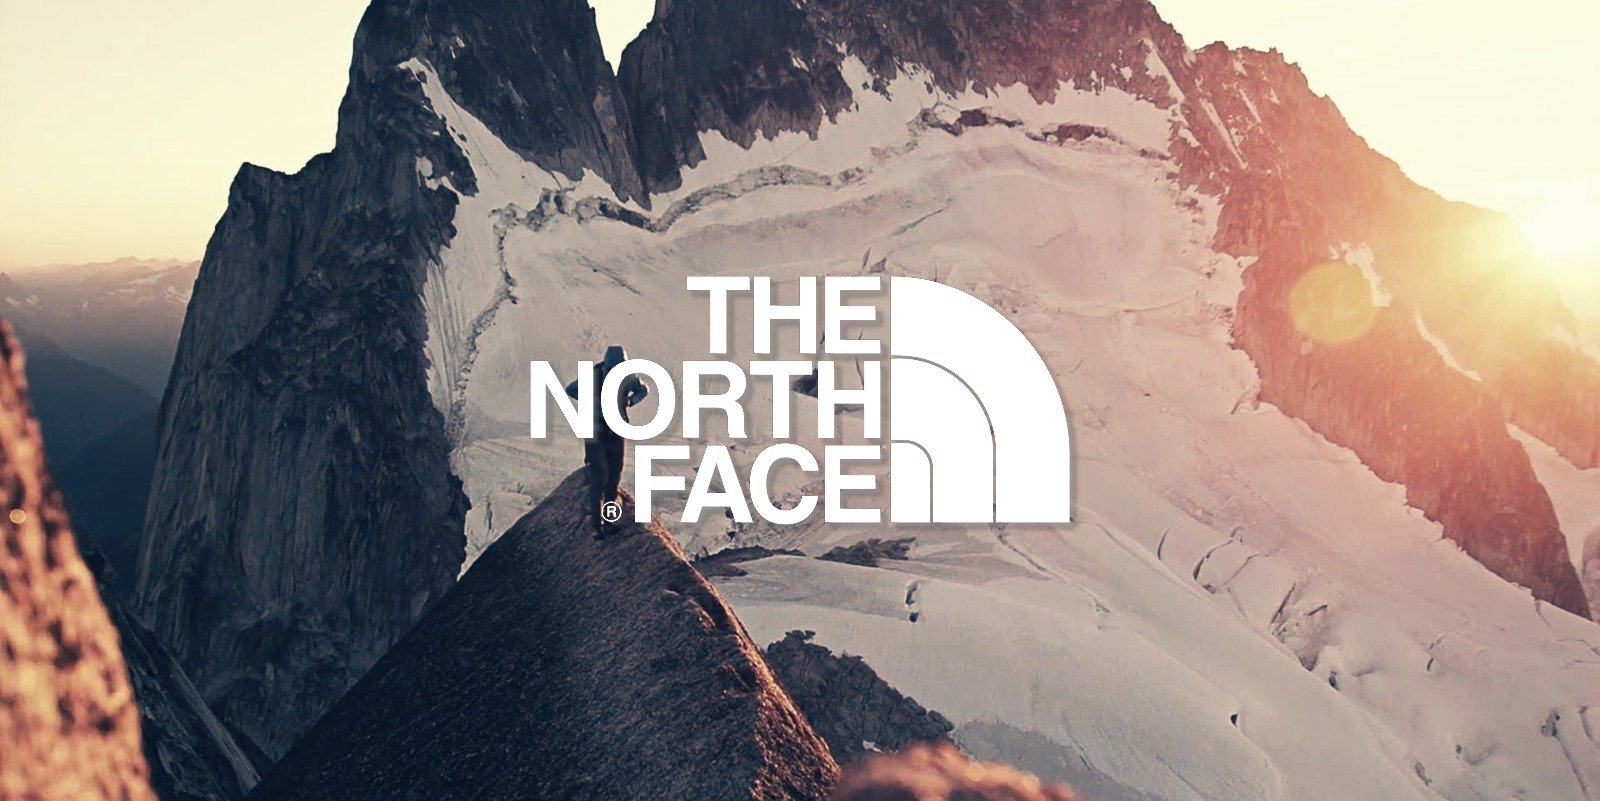 The North Face resets passwords after credential stuffing attack